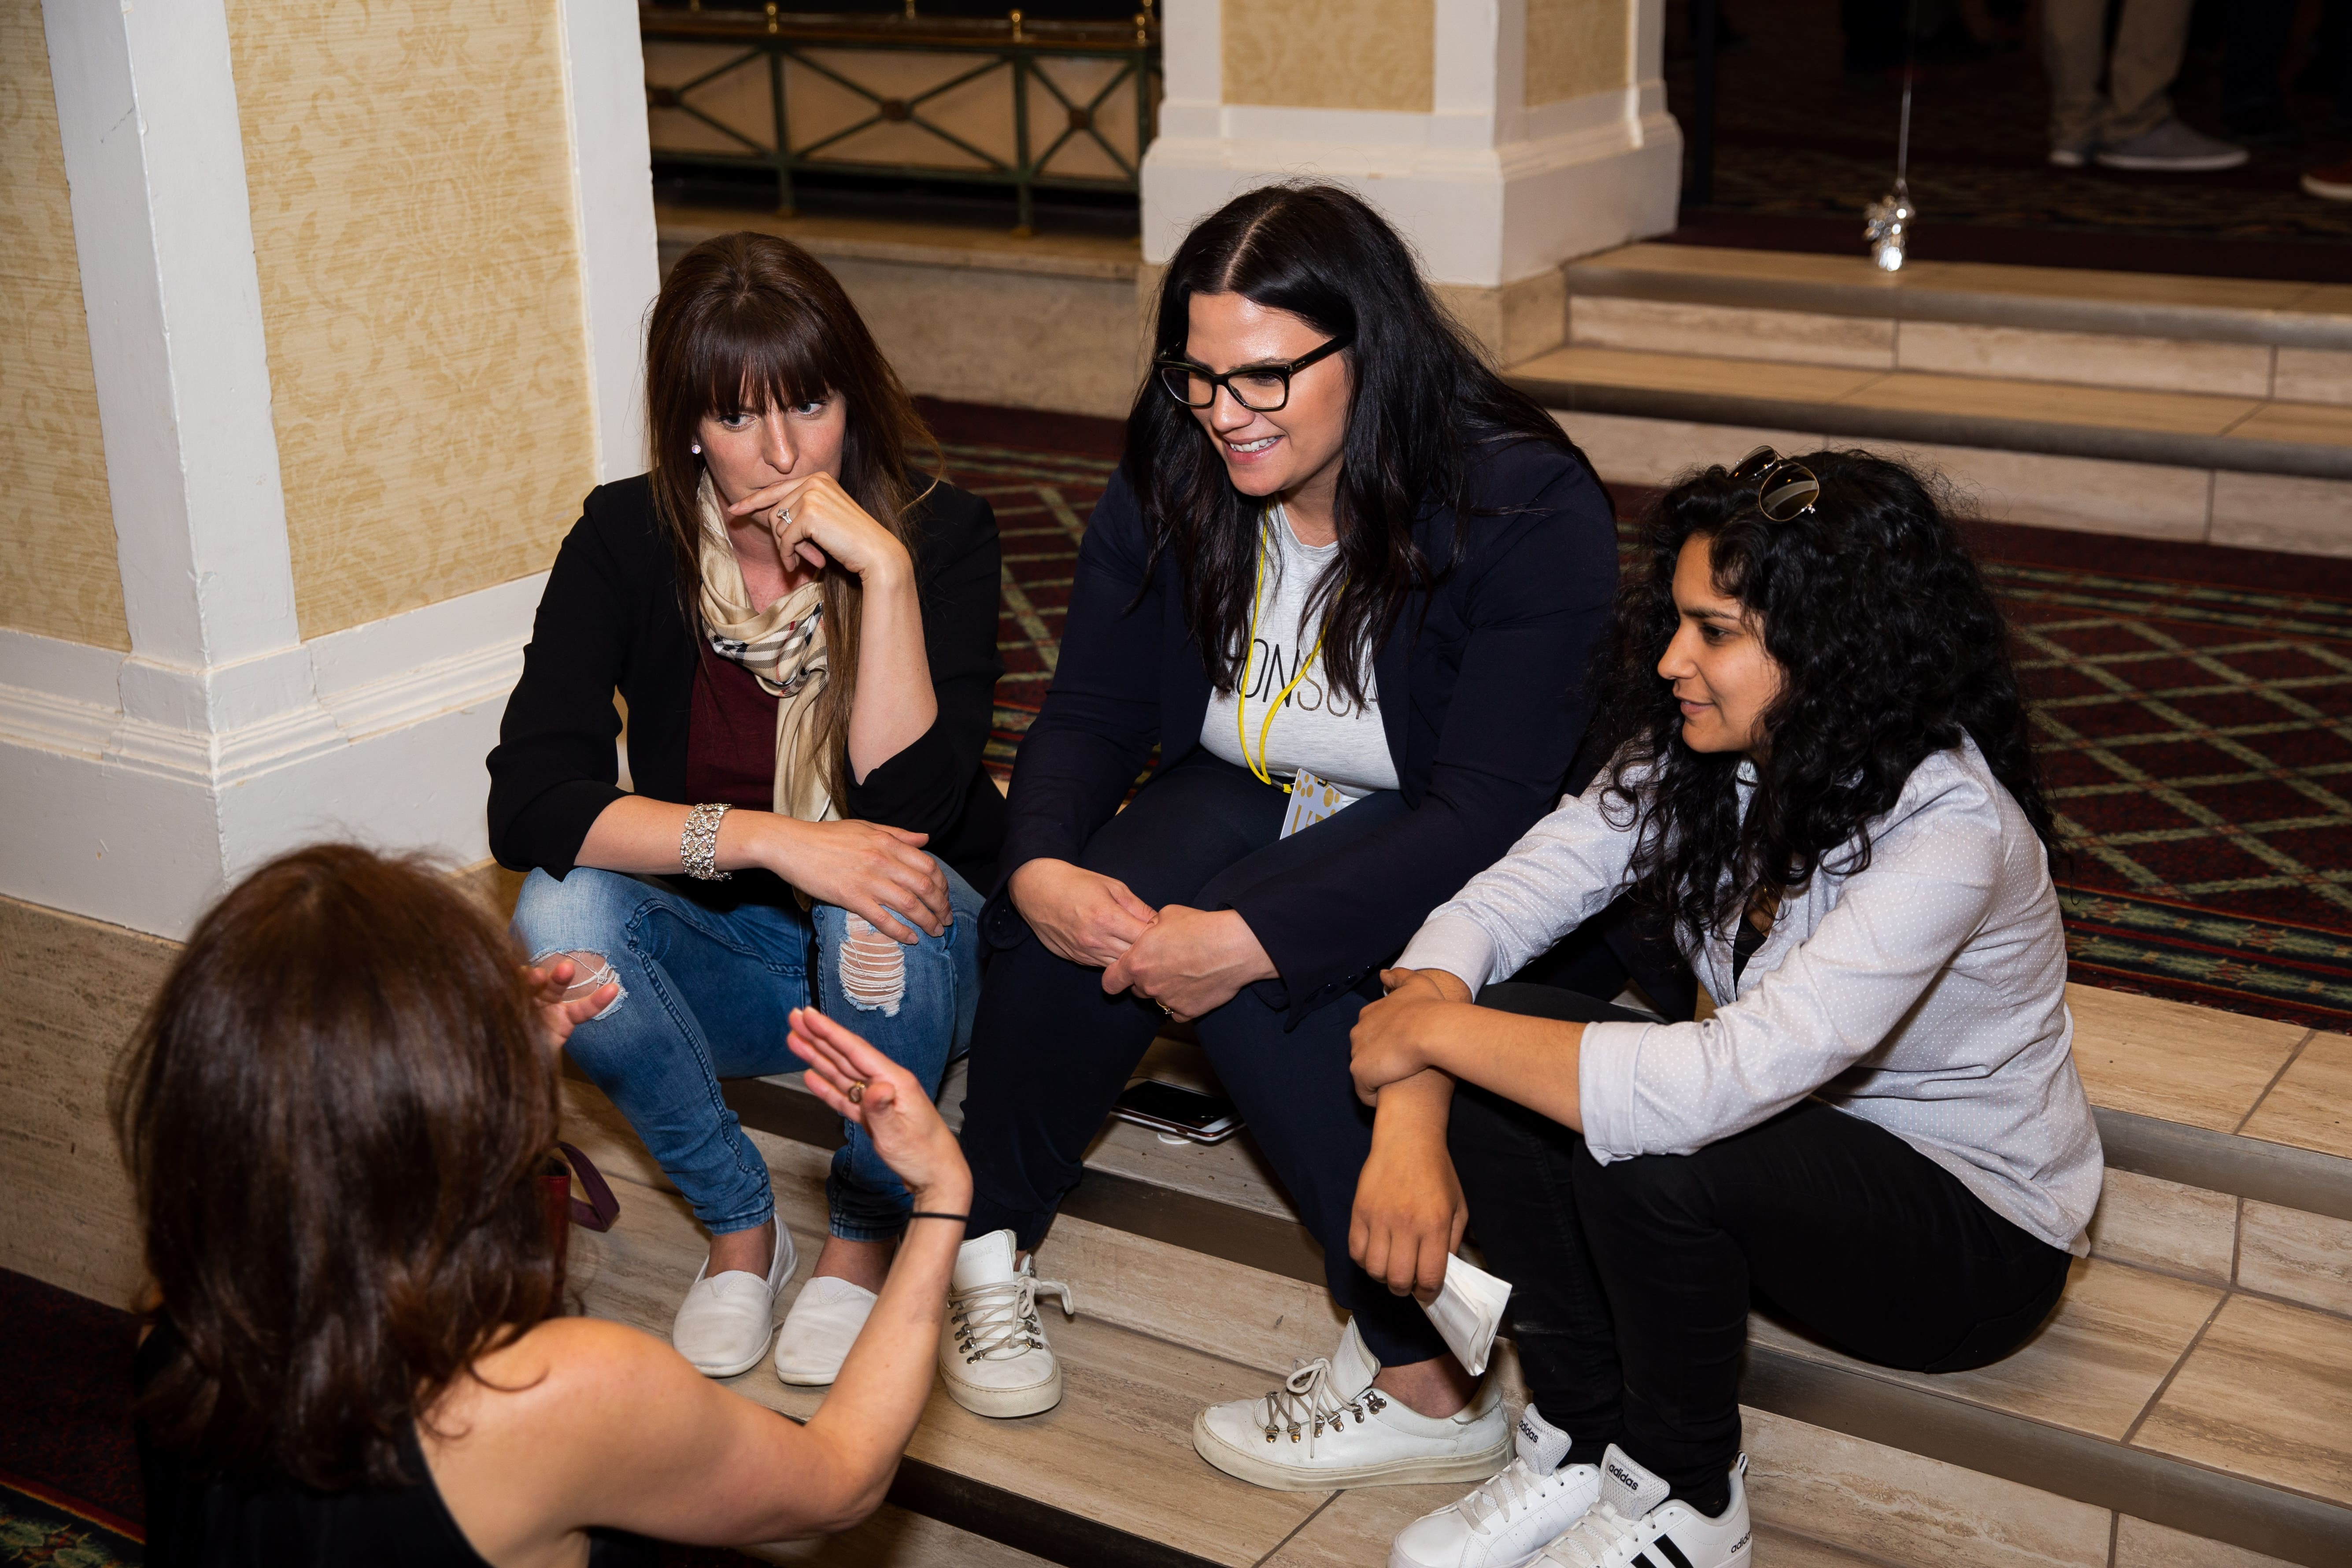 4 women sitting on 2 couches and talking.